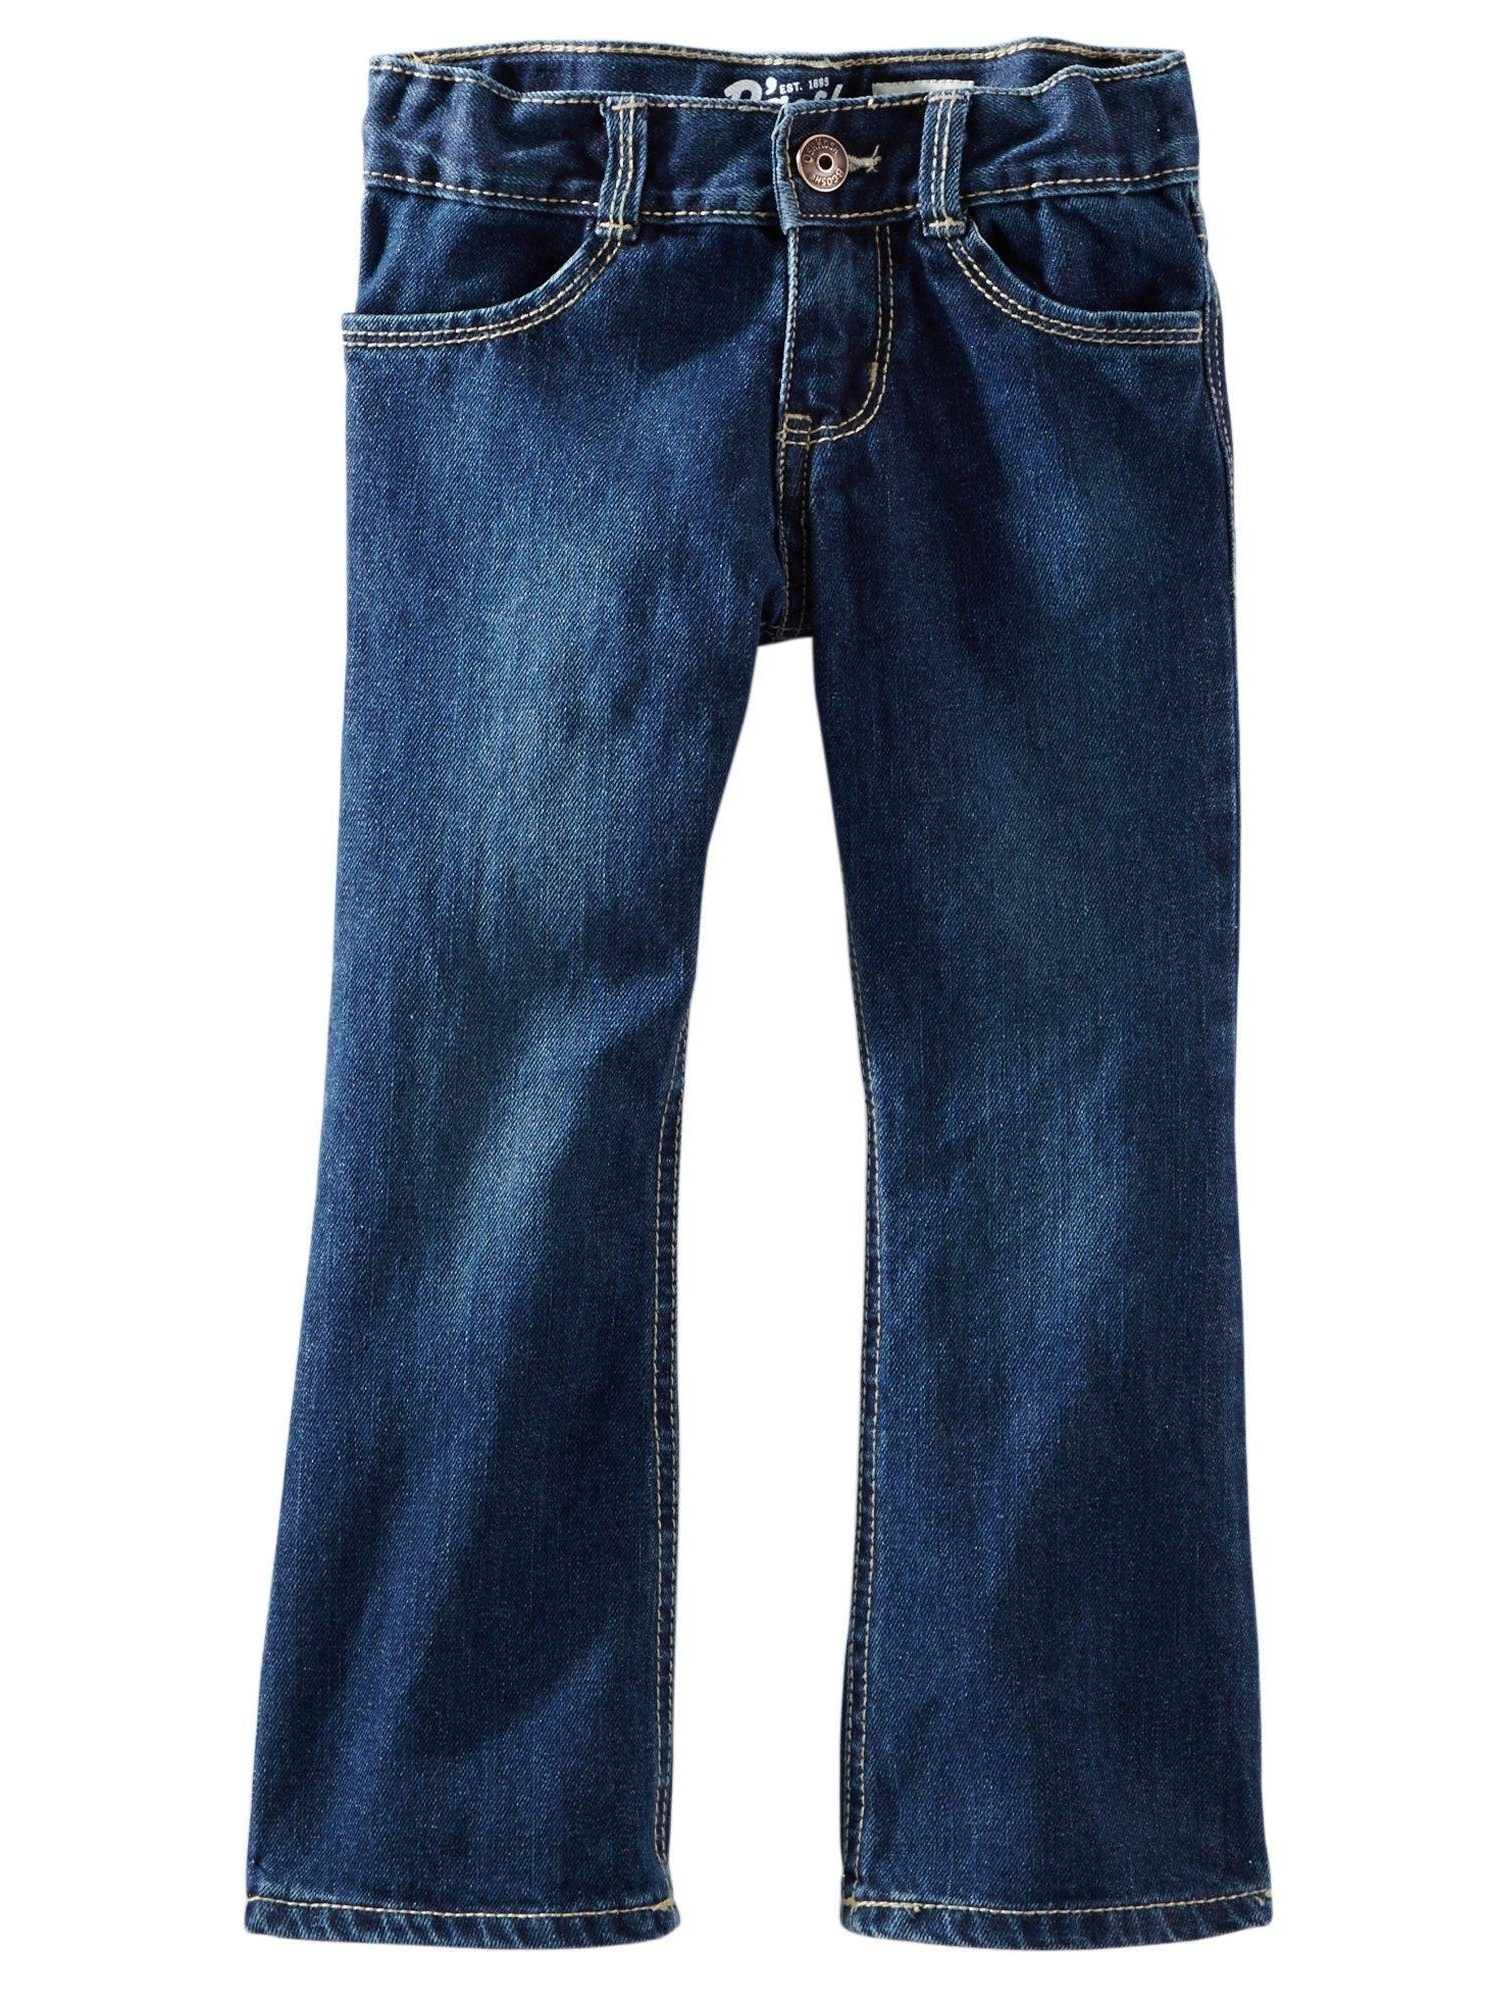 OshKosh B'gosh Baby Girl's Jeans Blue Denim